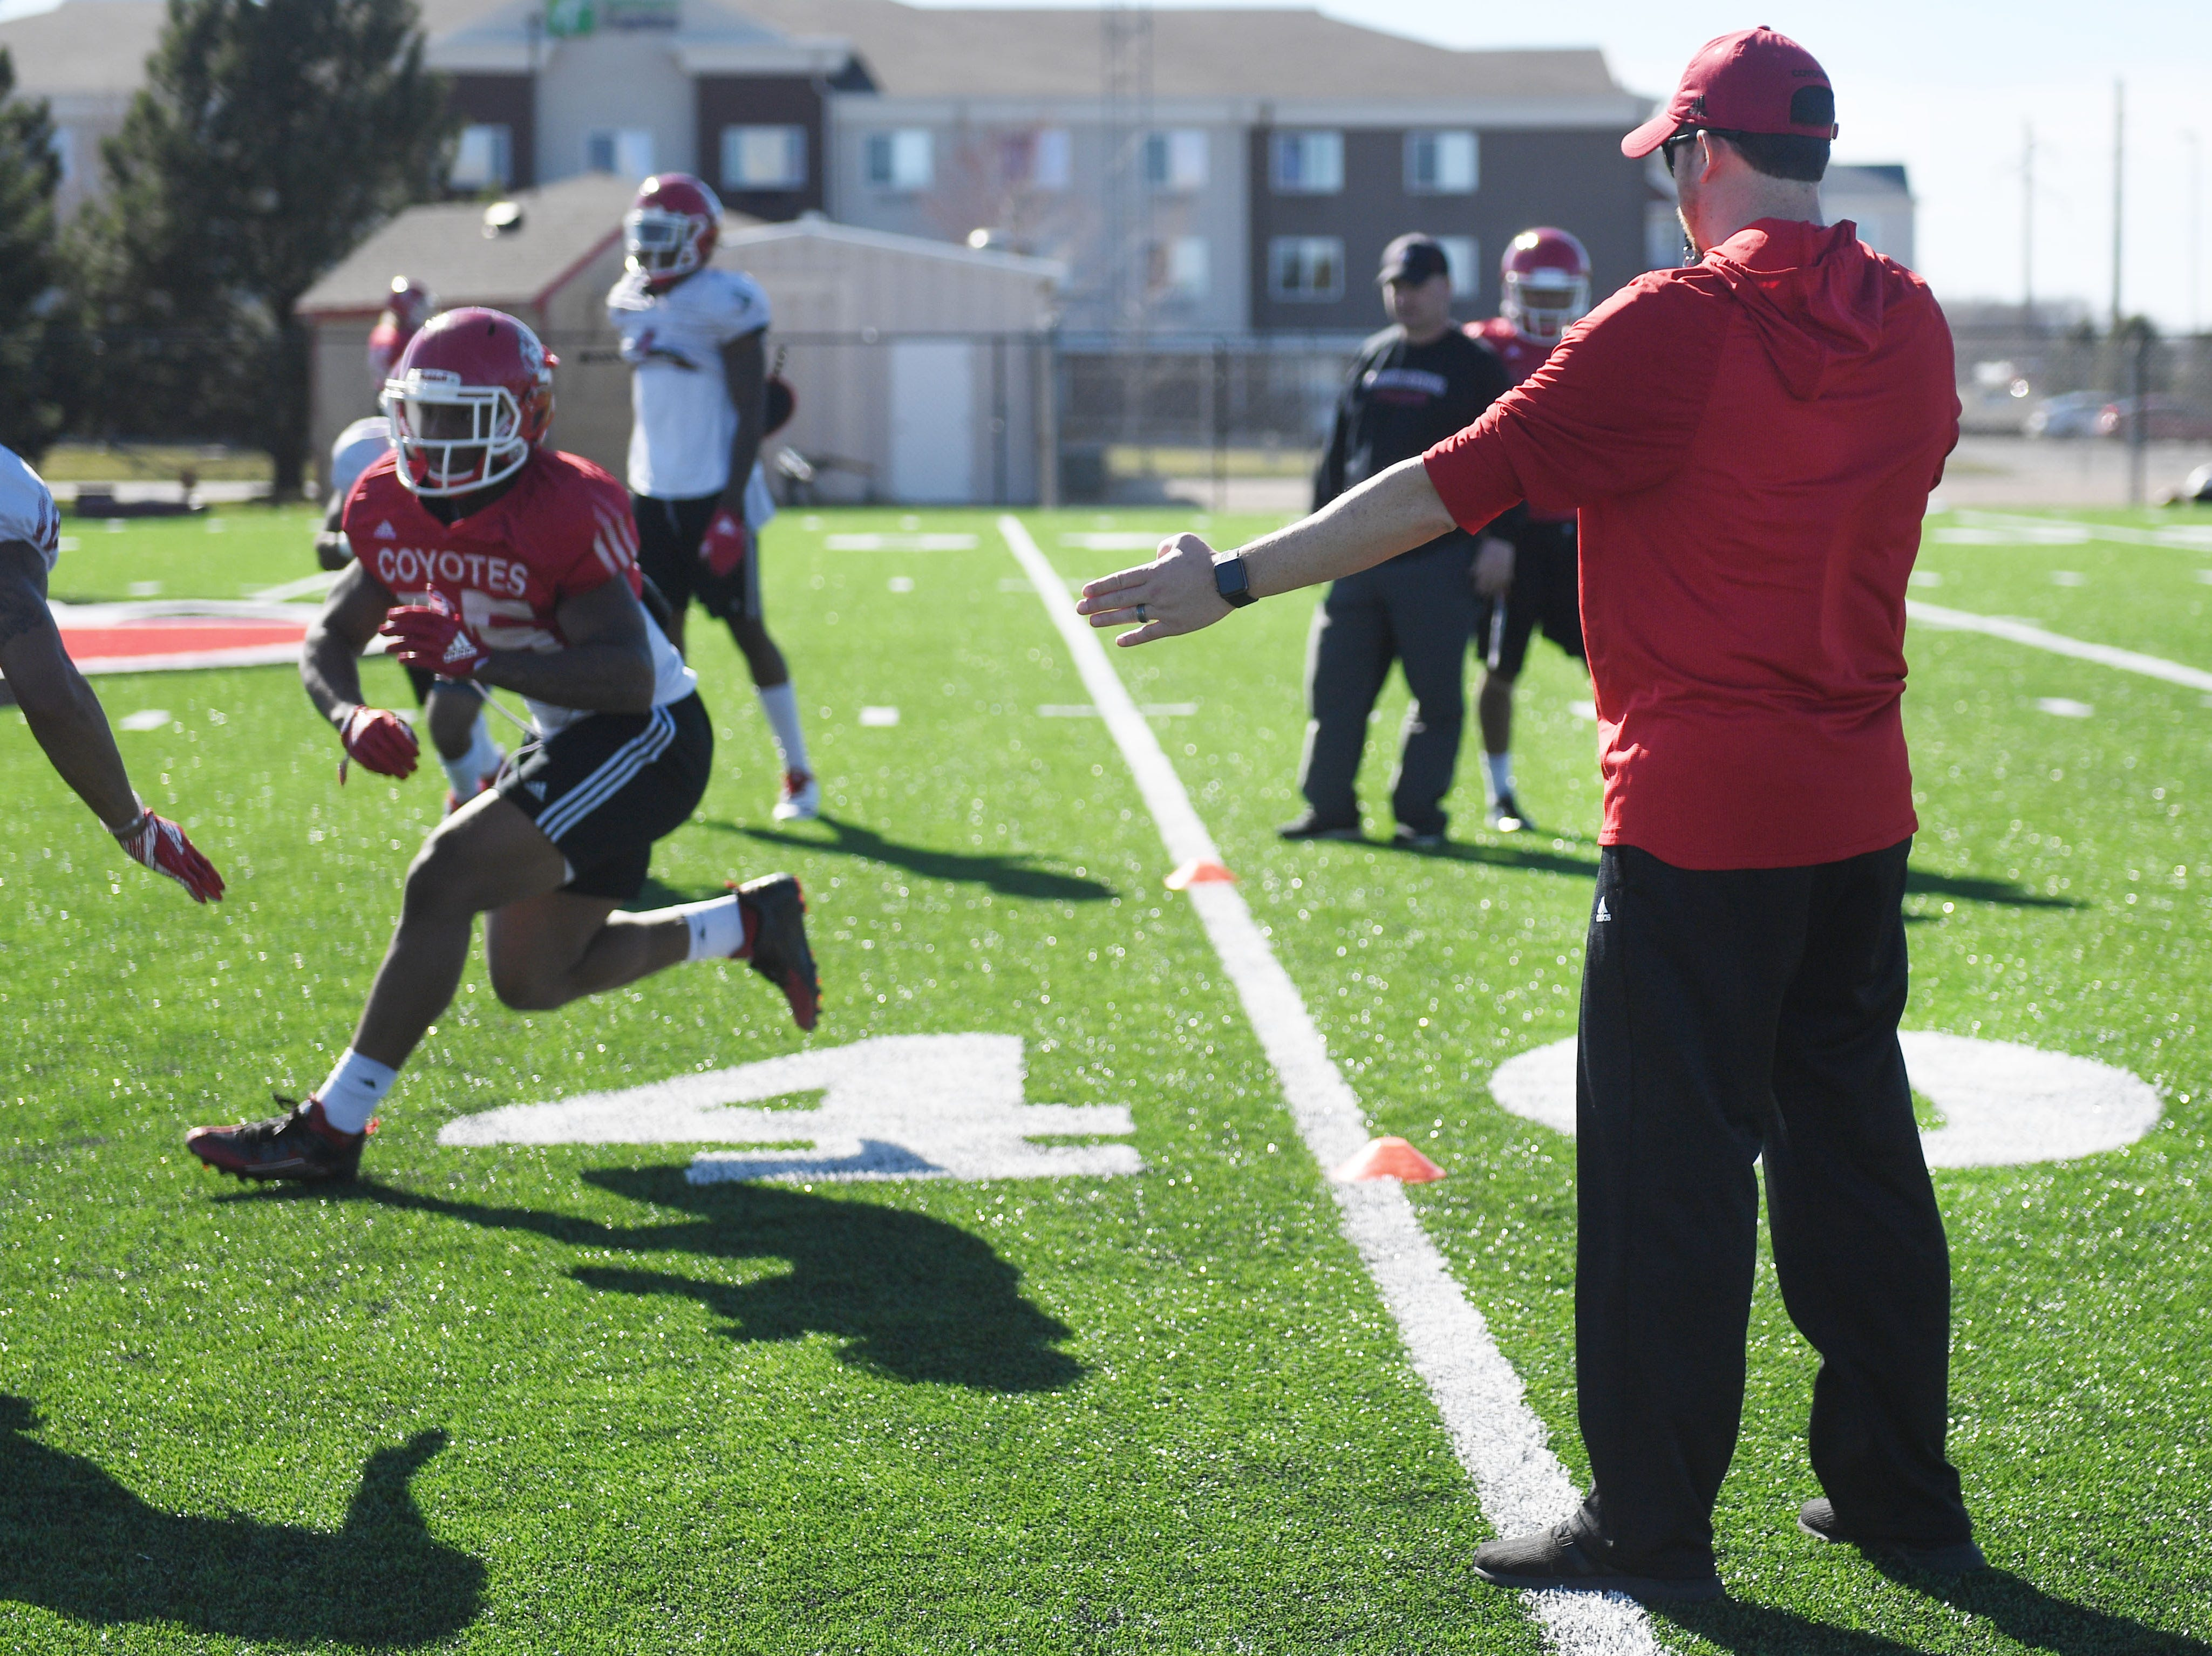 USD coach Travis Johansen, right, during spring football camp Monday, April, 8, on the outdoor practice field at the university in Vermillion.